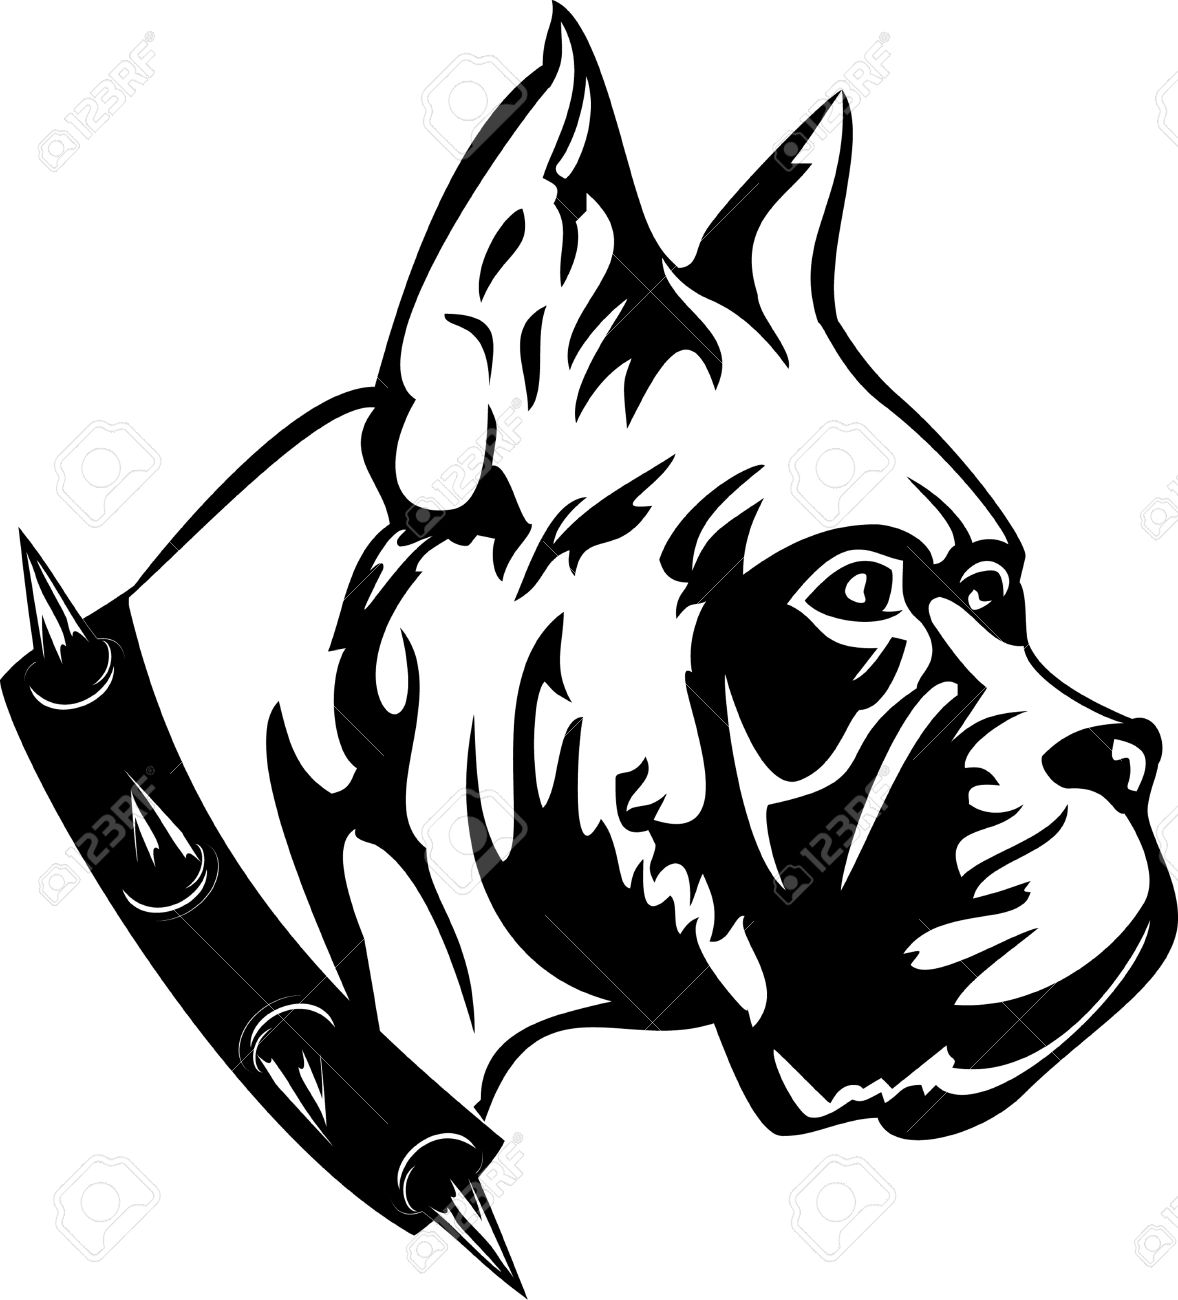 Dogs Black And White Clipart Black White Image of Dog of